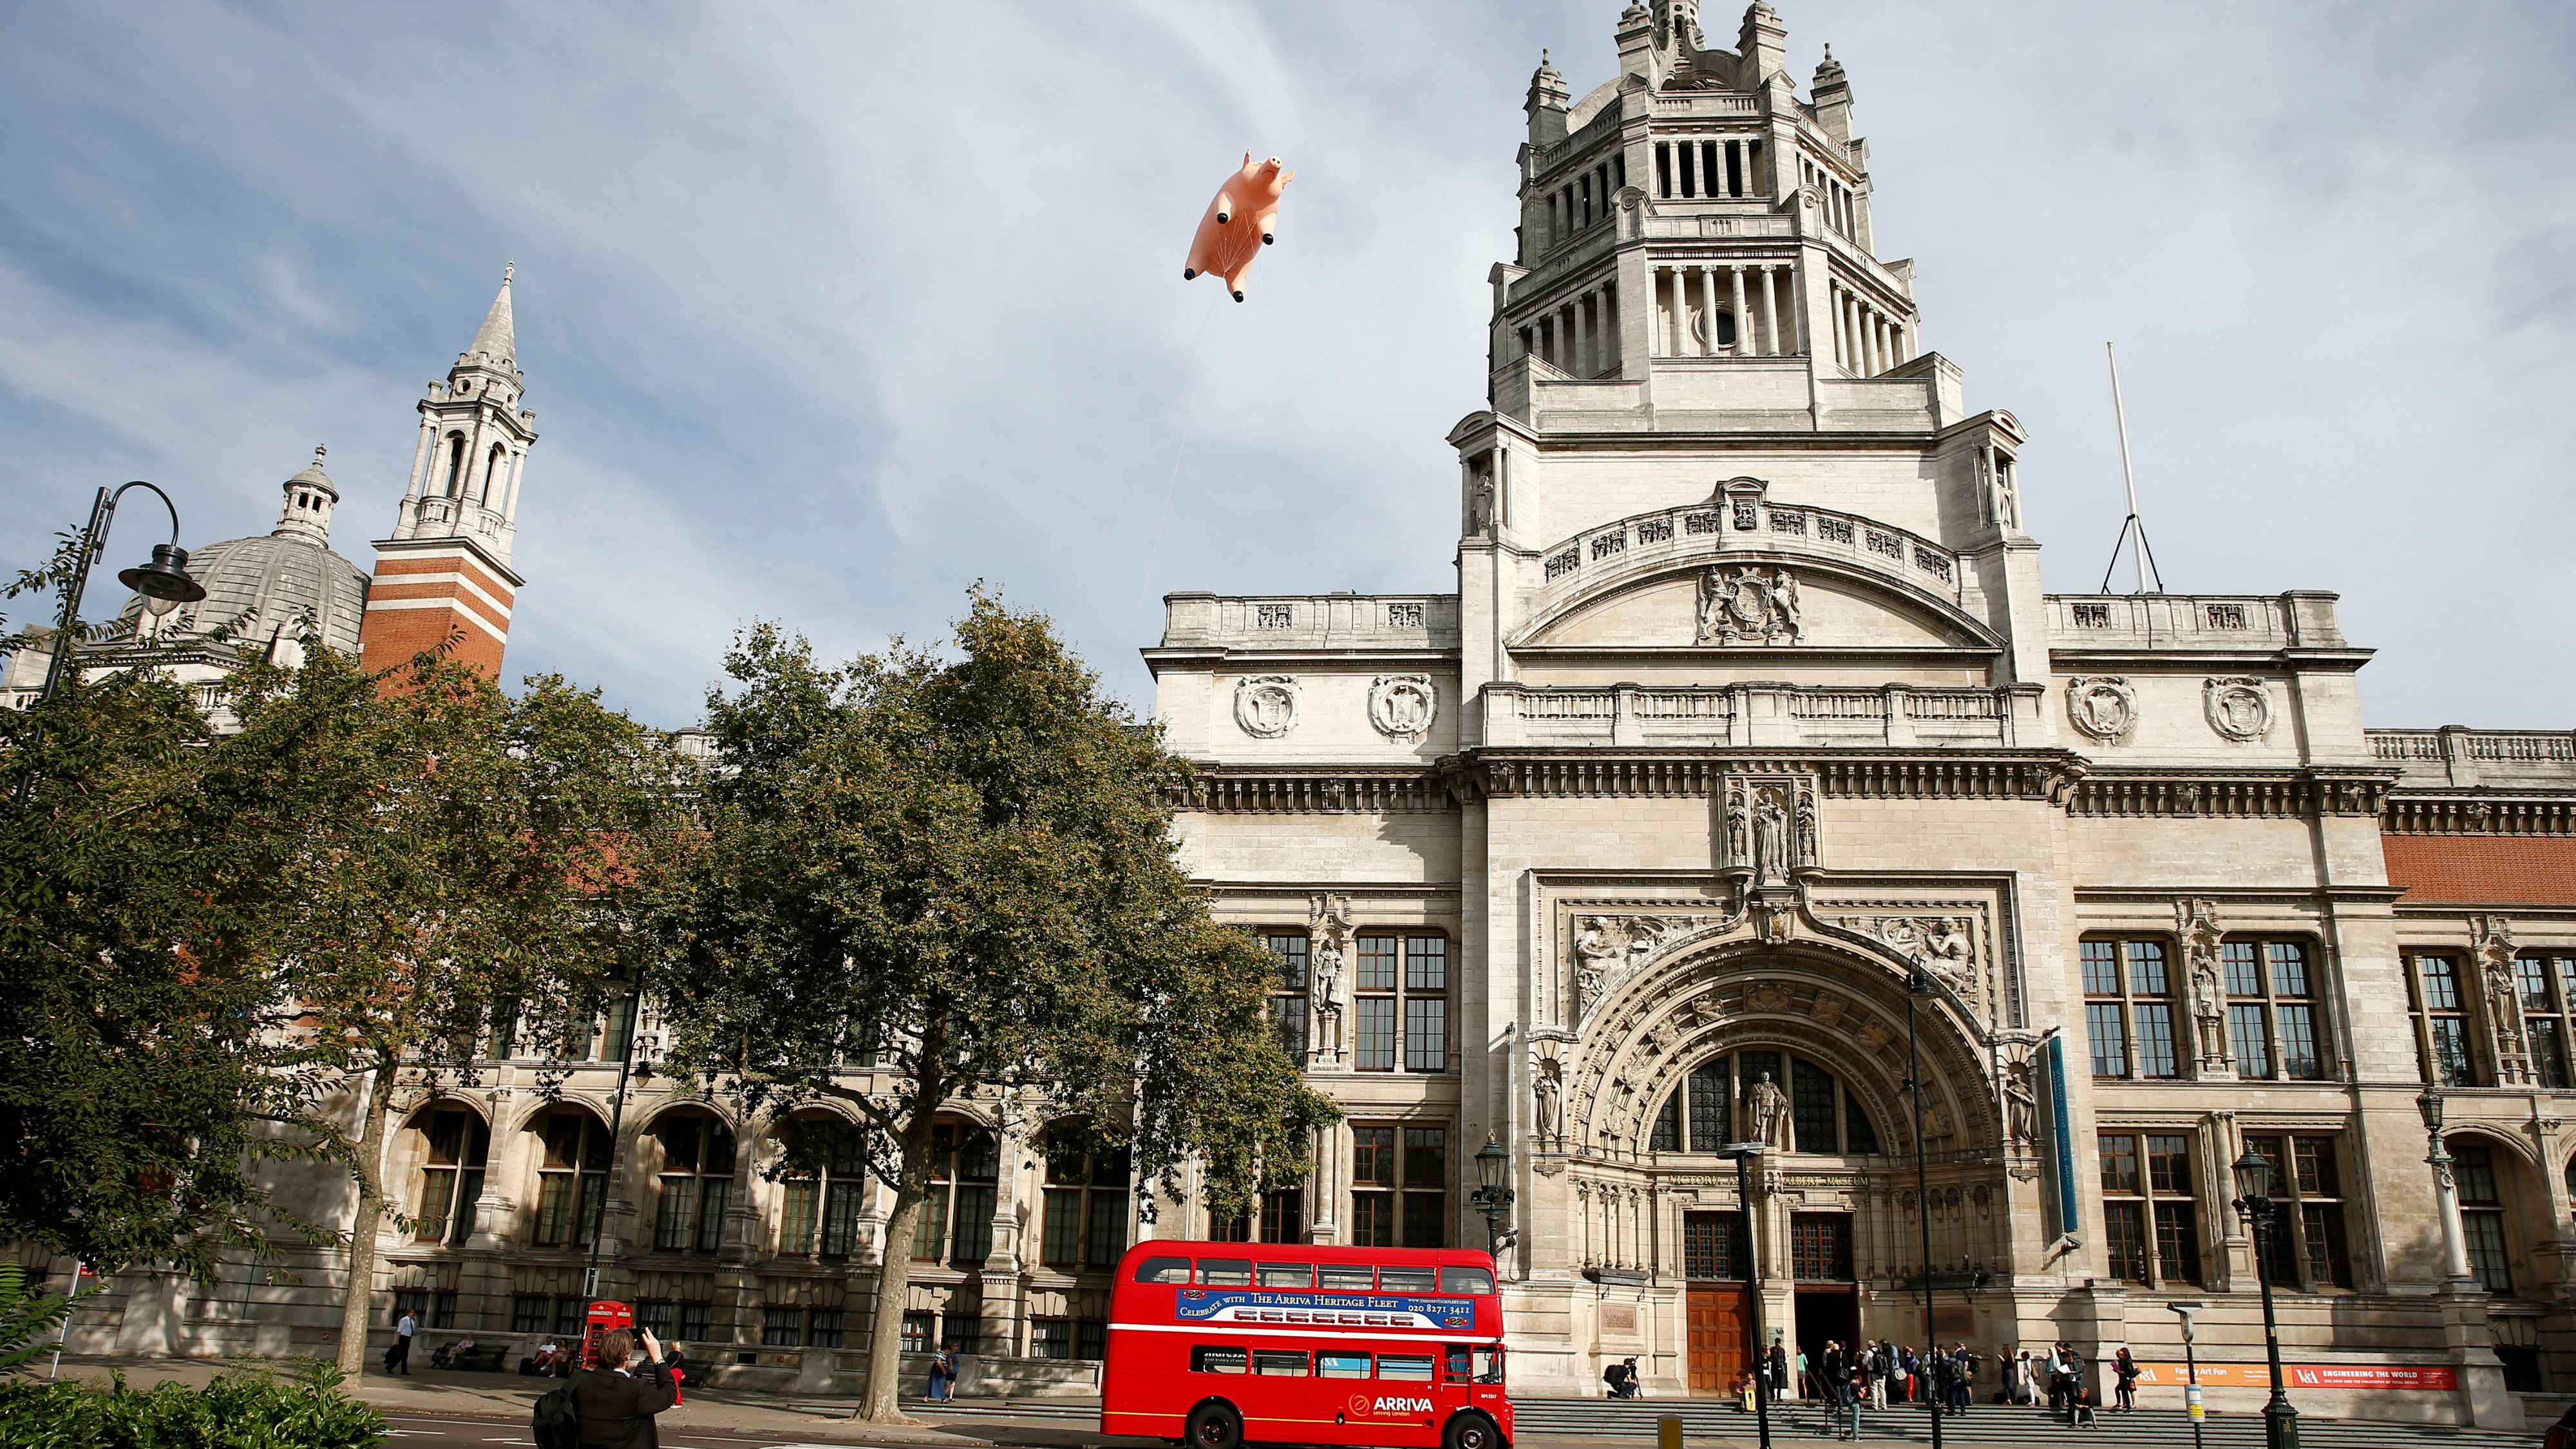 """An inflatable pig from the band Pink Floyd floats over the Victoria and Albert Museum to promote """"The Pink Floyd Exhibition: Their Mortal Remains"""", which will open in May 2017, in London, Britain August 31, 2016."""